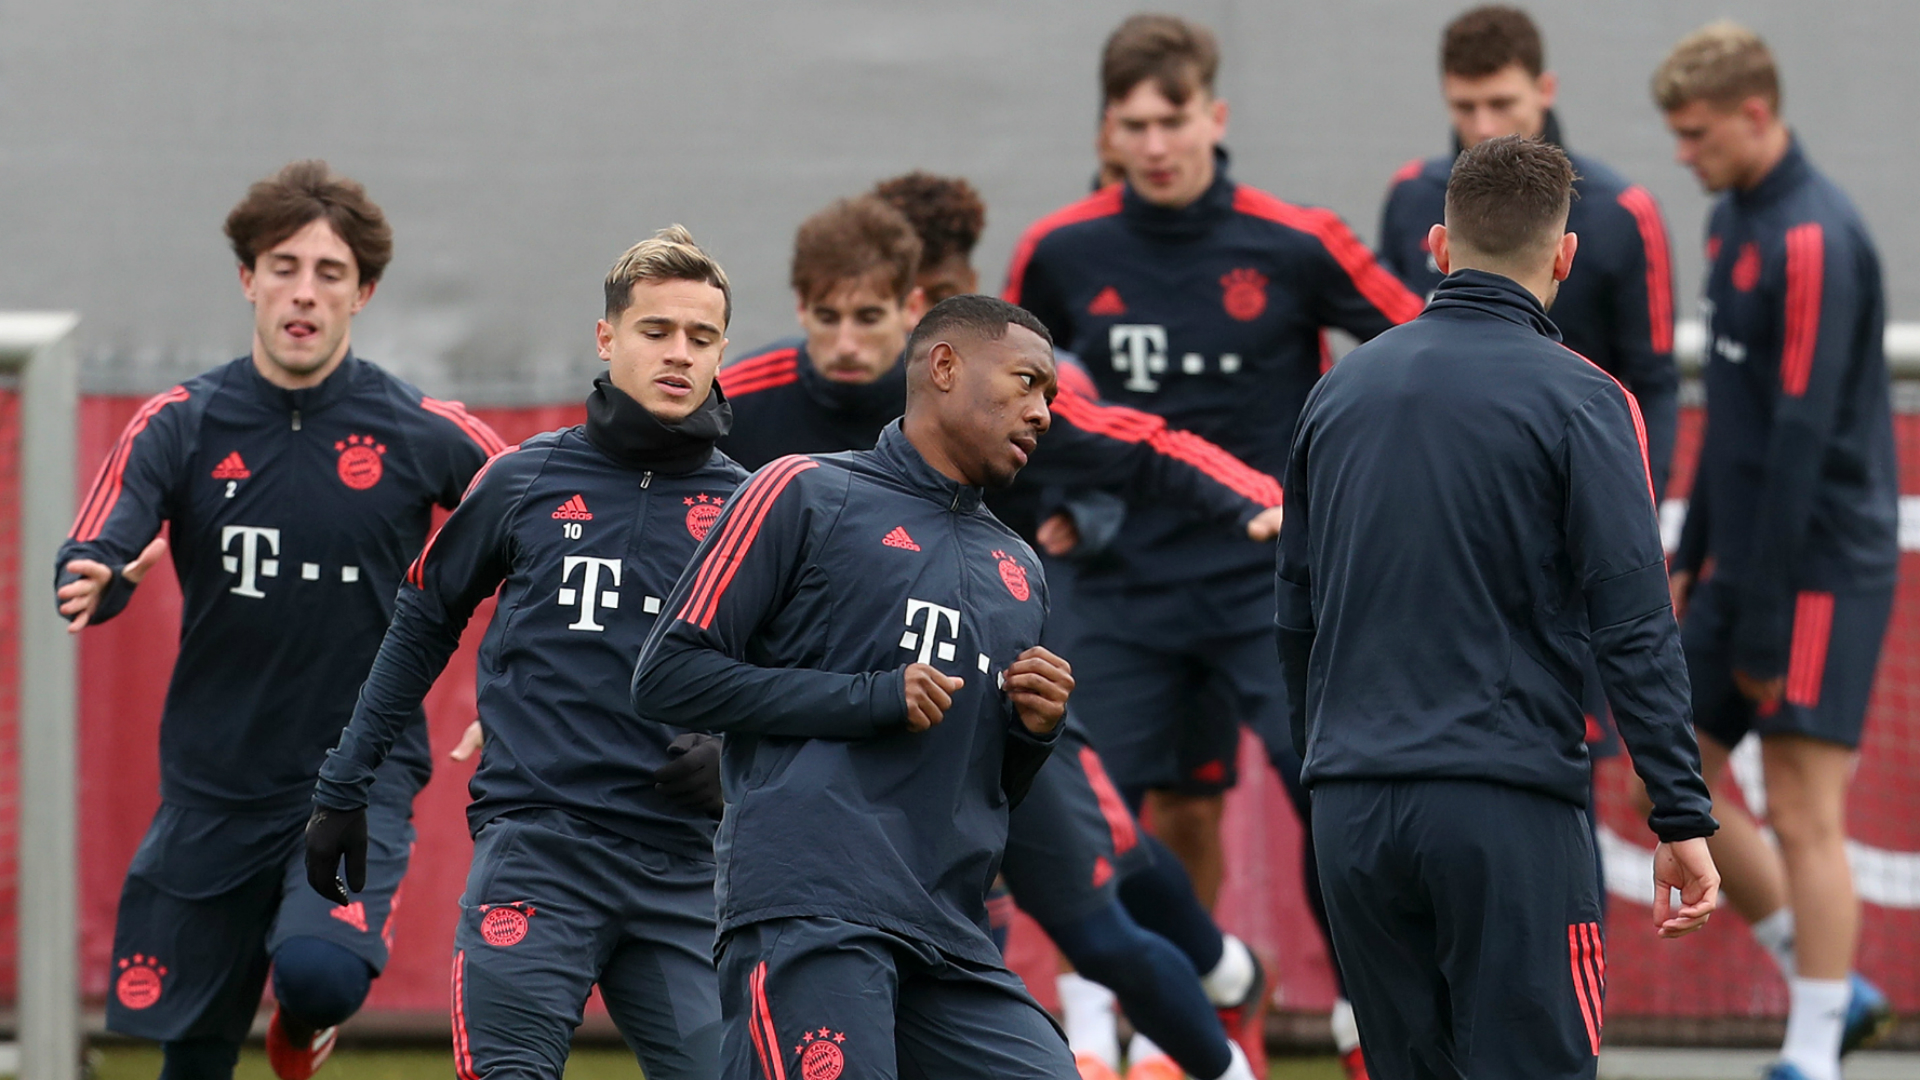 Coronavirus: Bayern Munich confirm return to first-team training